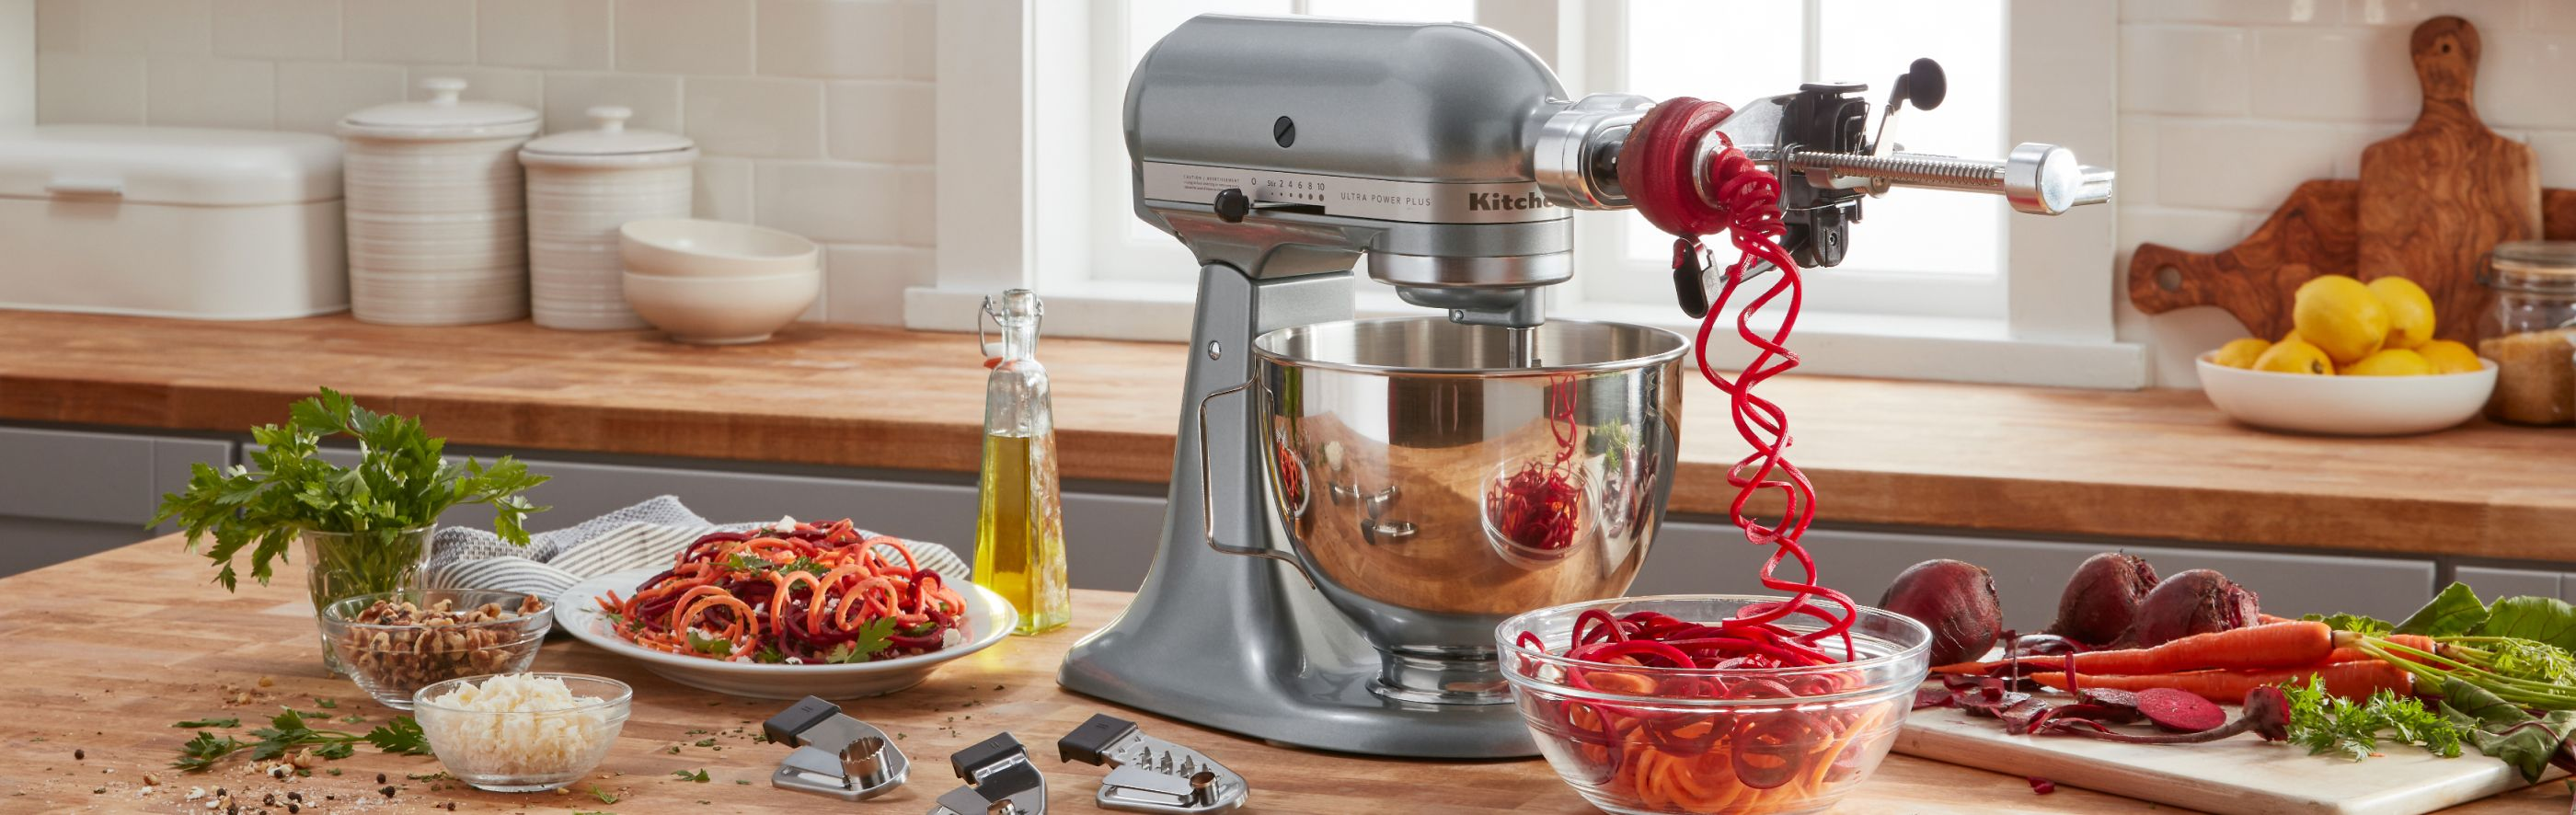 KitchenAid® Stand Mixer w/attachment making beet noodles.